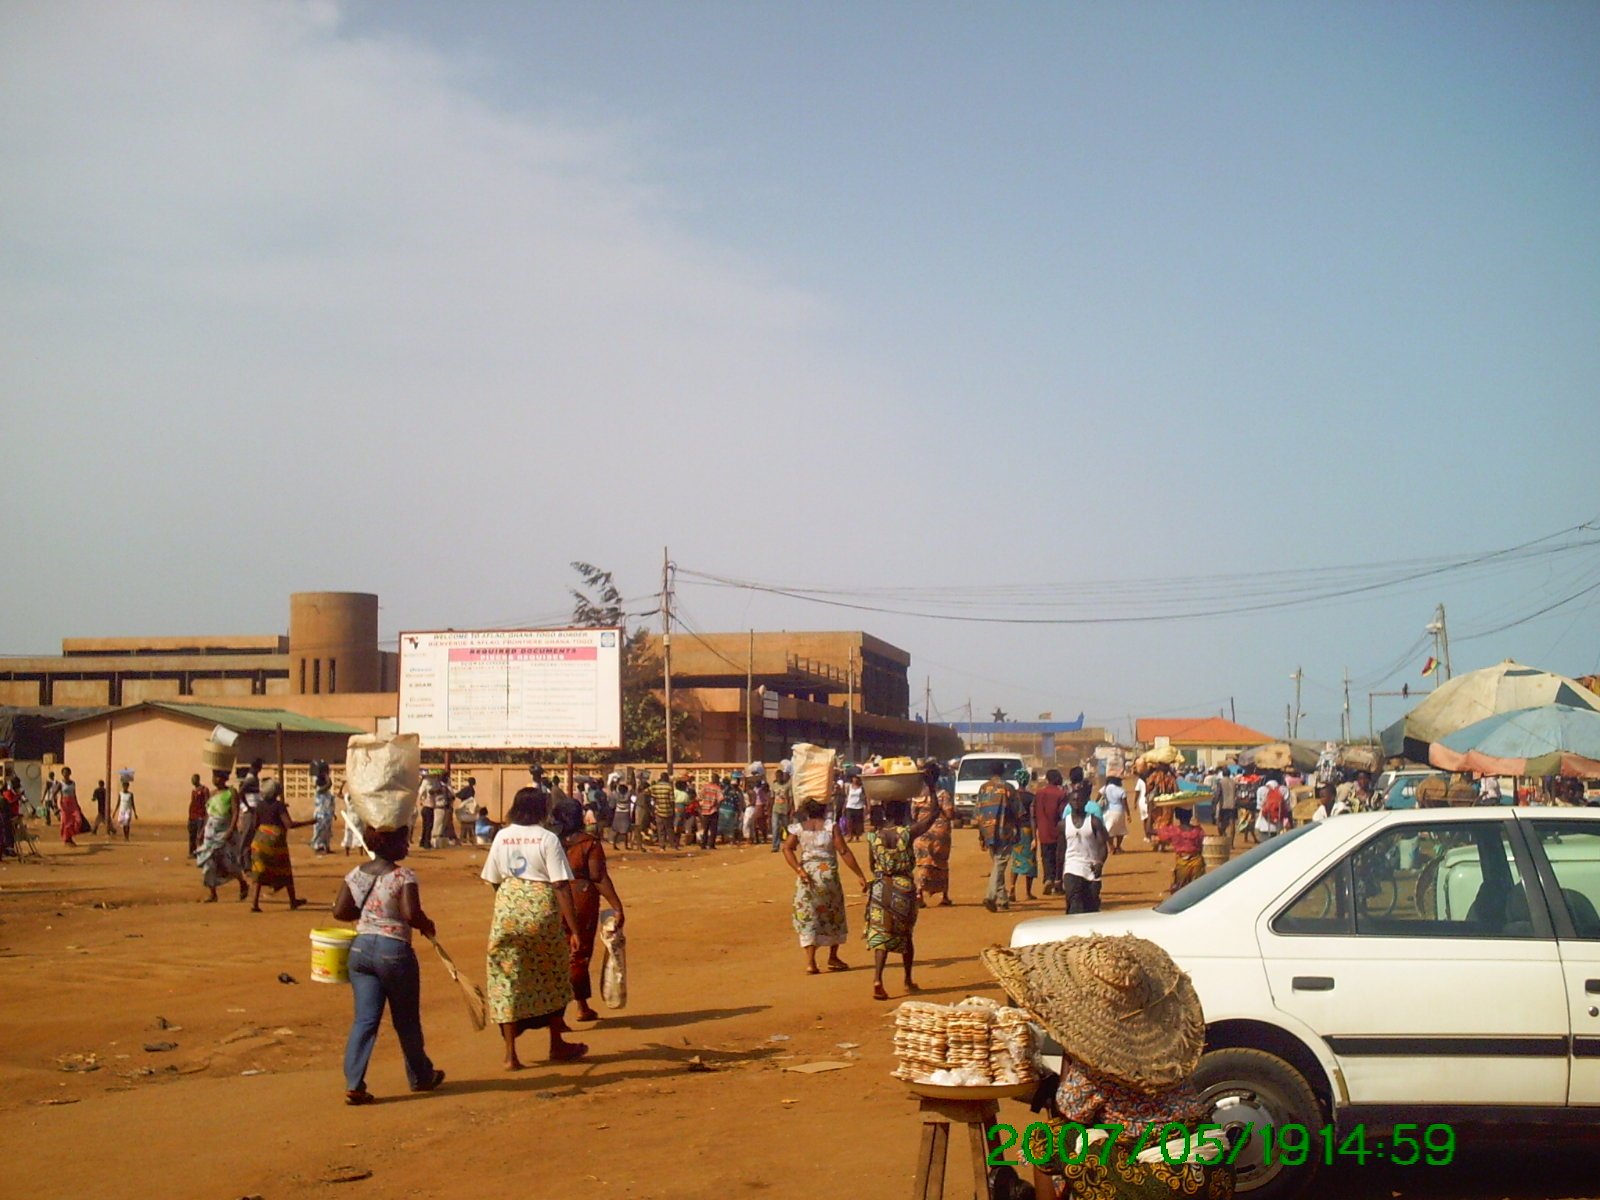 Brisk business at Aflao, the Ghanaian town bordering Togo.